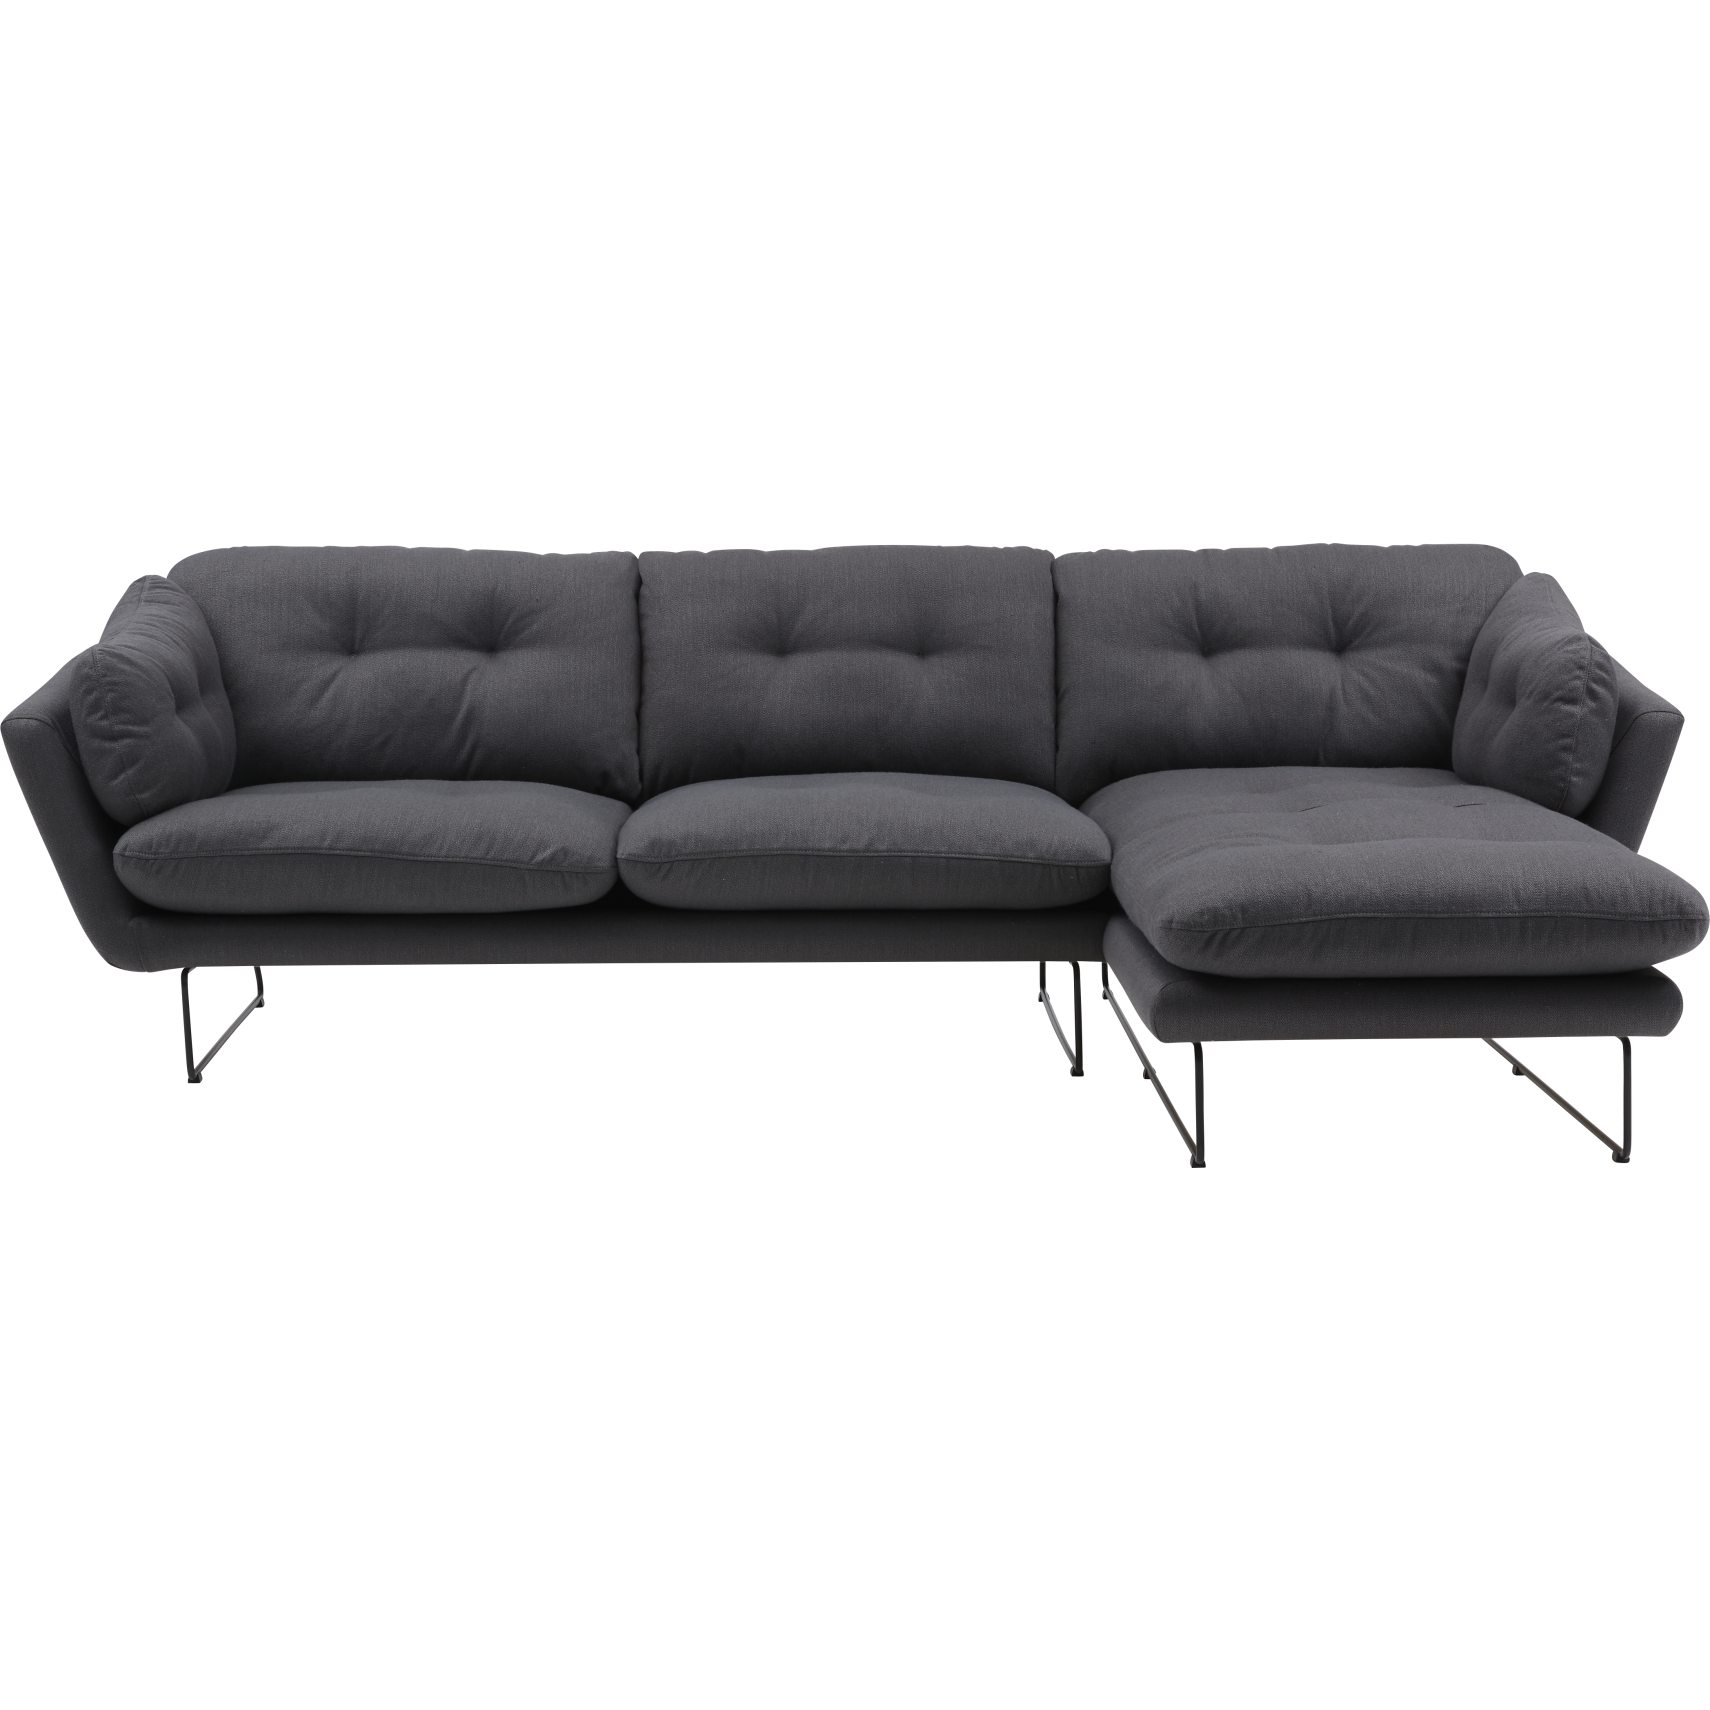 Condor Sofa med chaiselong - Ambra 302-04 Antracit stof og ben i sort metal